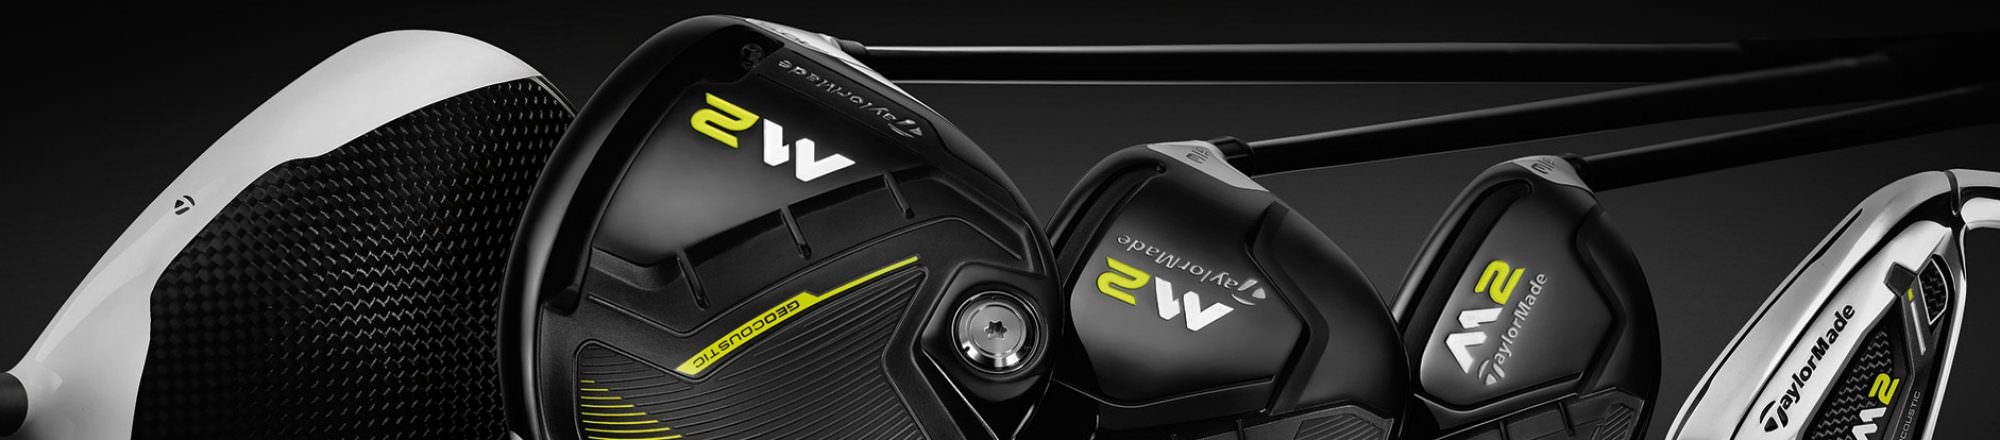 Equipment: Lots to get excited about in the TaylorMade 2017 product range